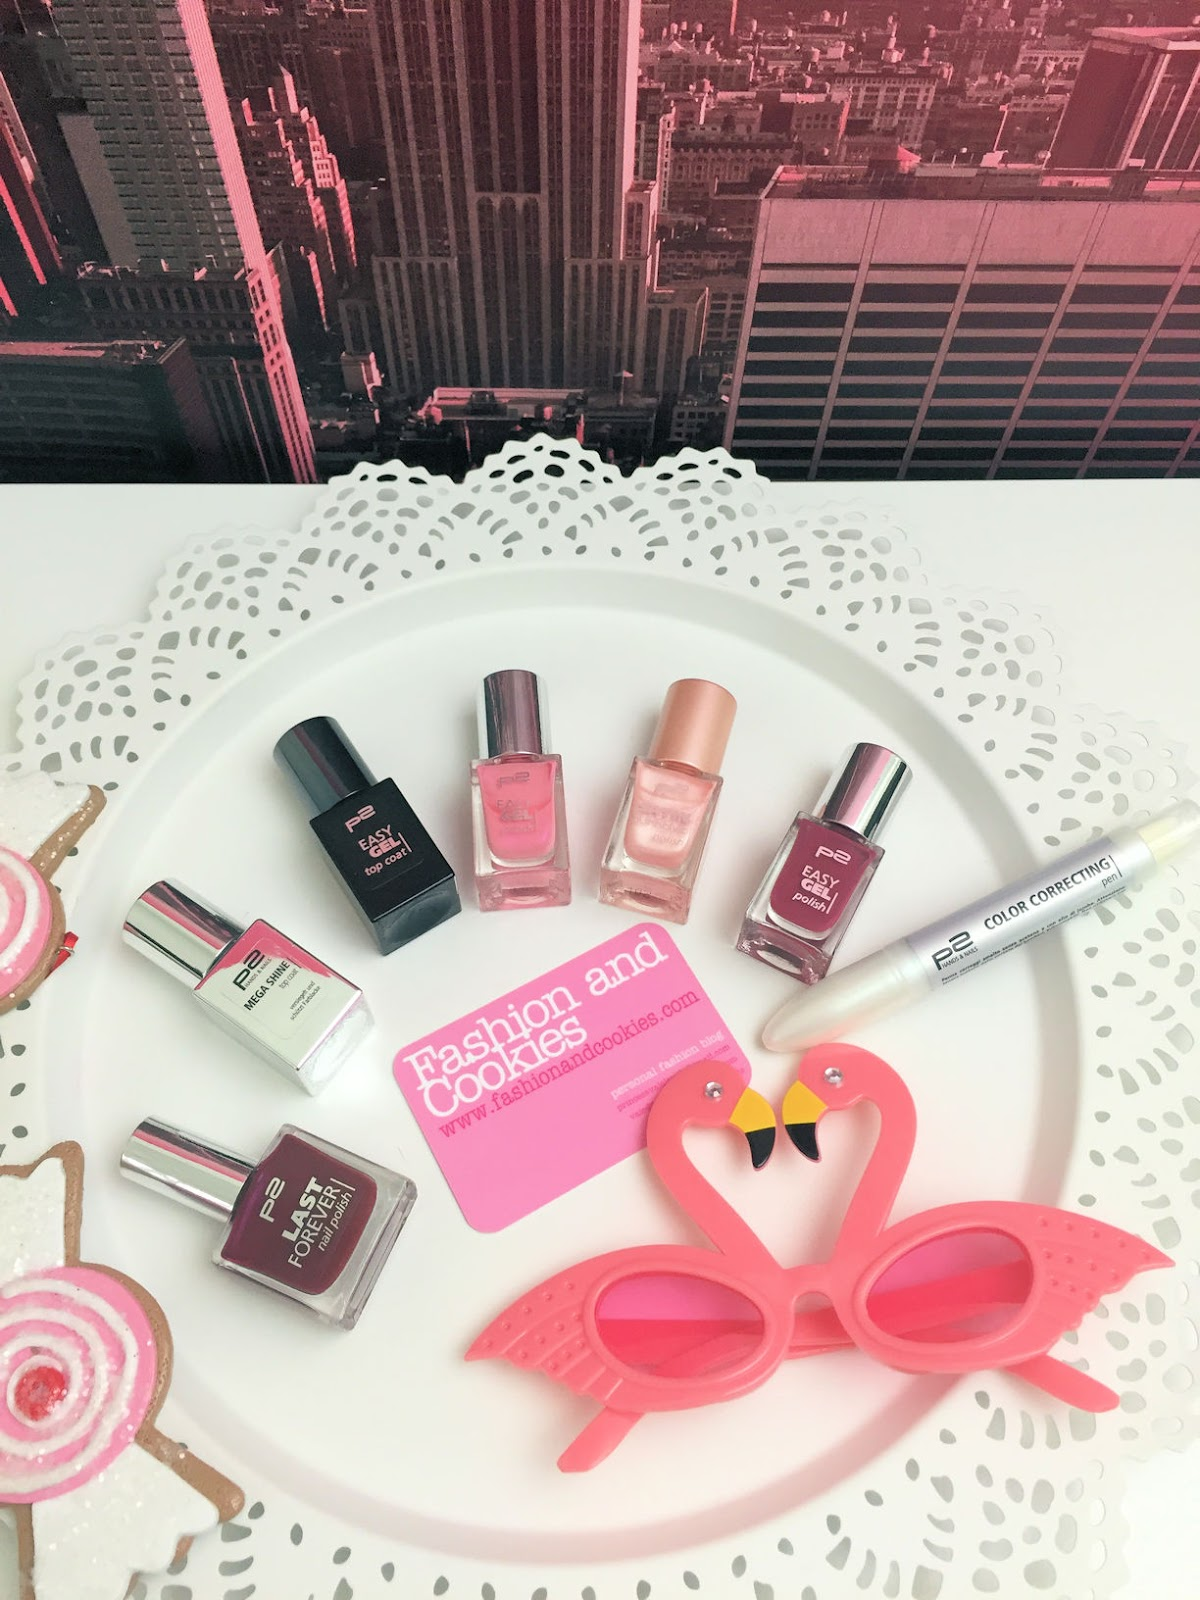 p2 Cosmetics makeup low cost review e haul smalti su Fashion and Cookies beauty blog, beauty blogger